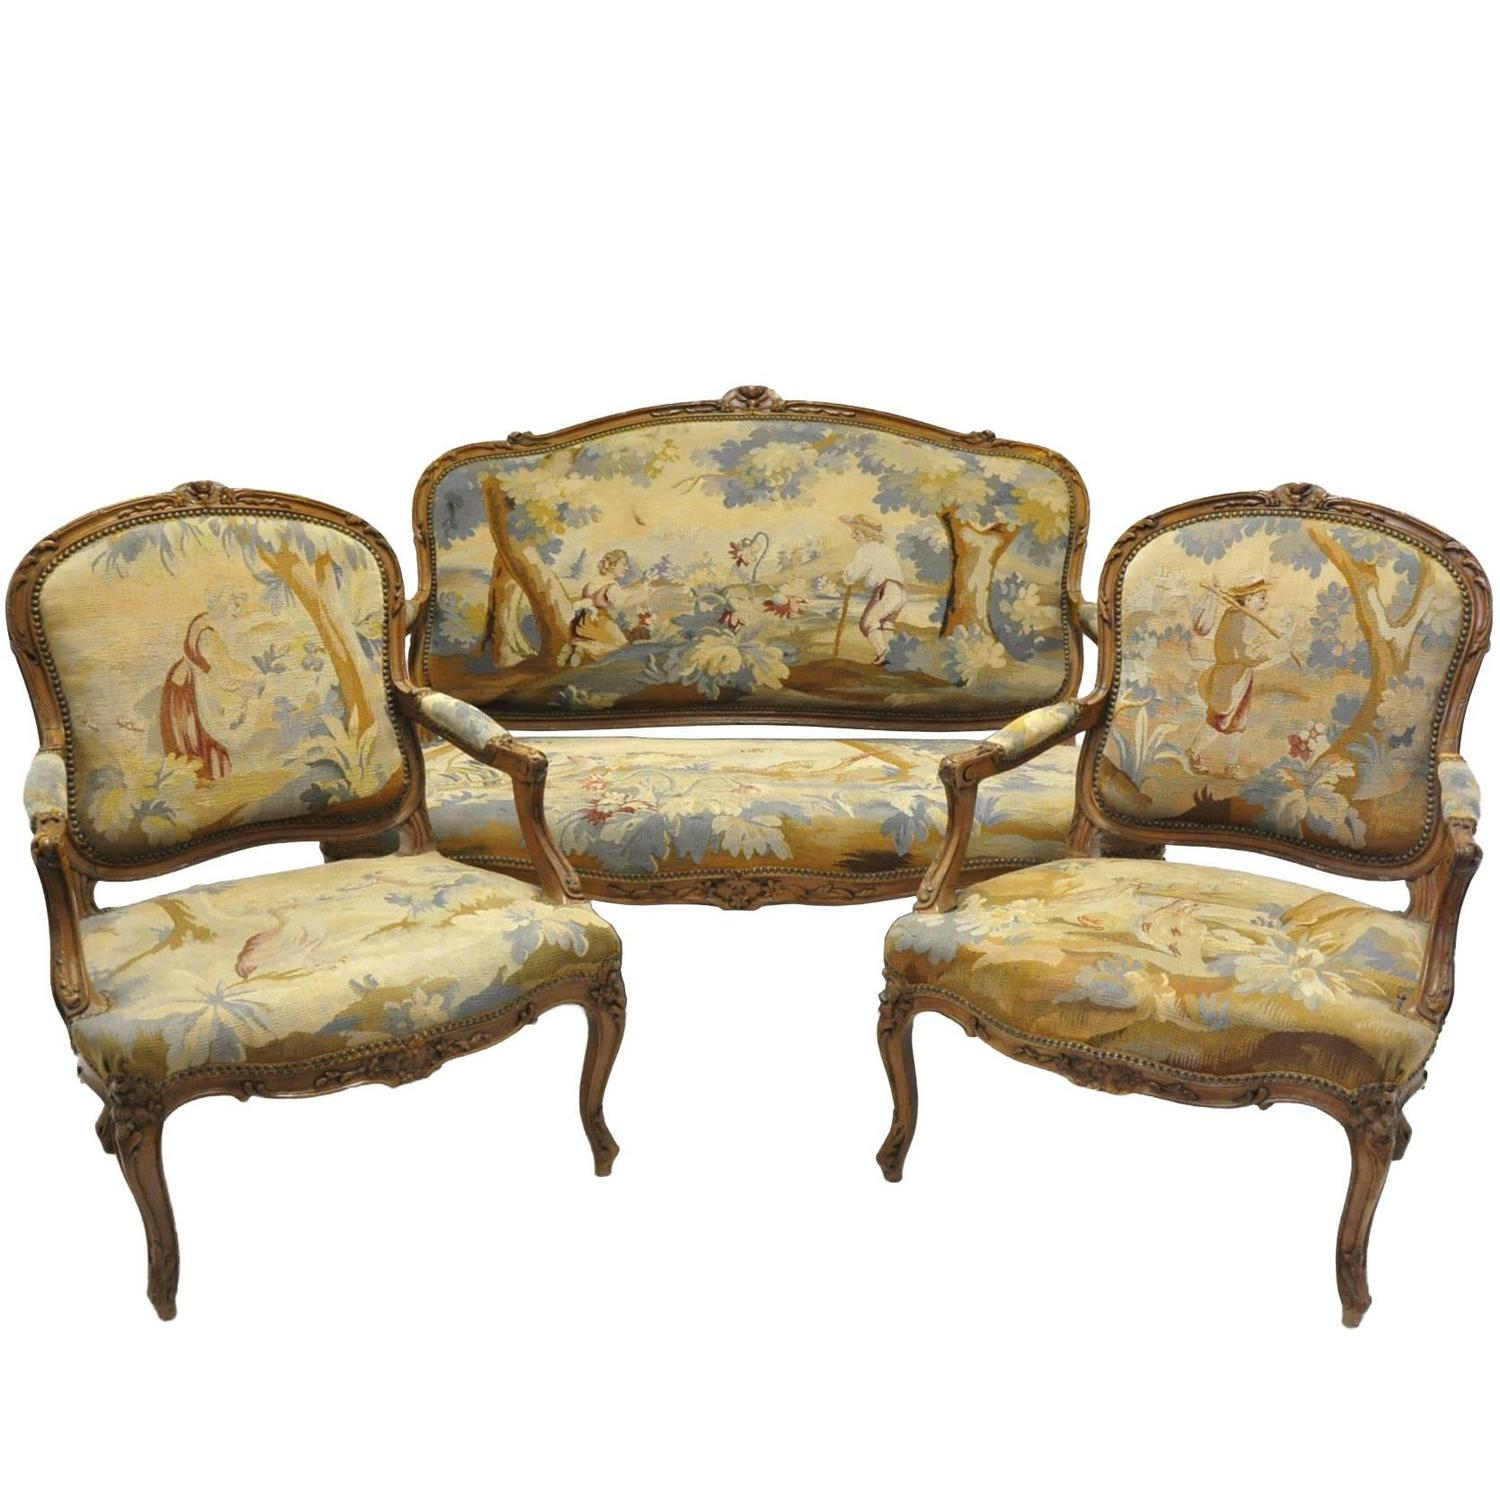 three piece antique louis xv salon seating set with